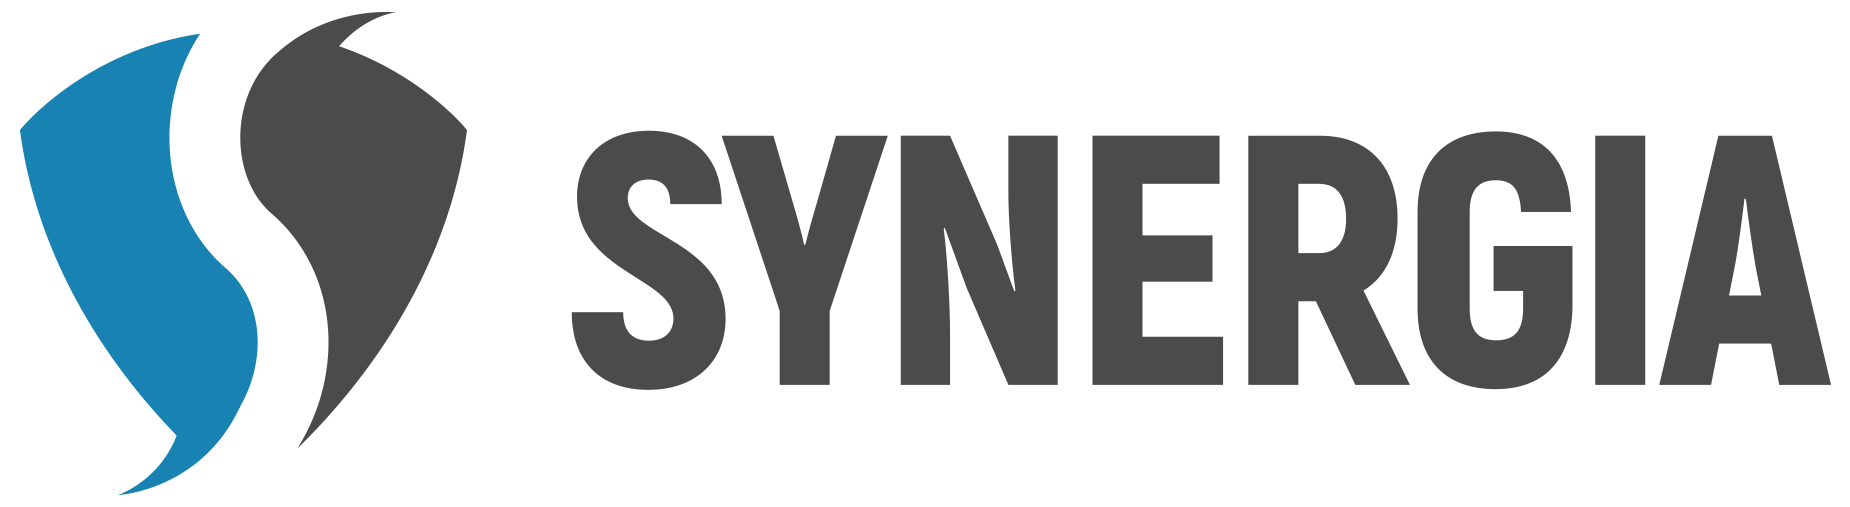 Synergia management czech s.r.o.